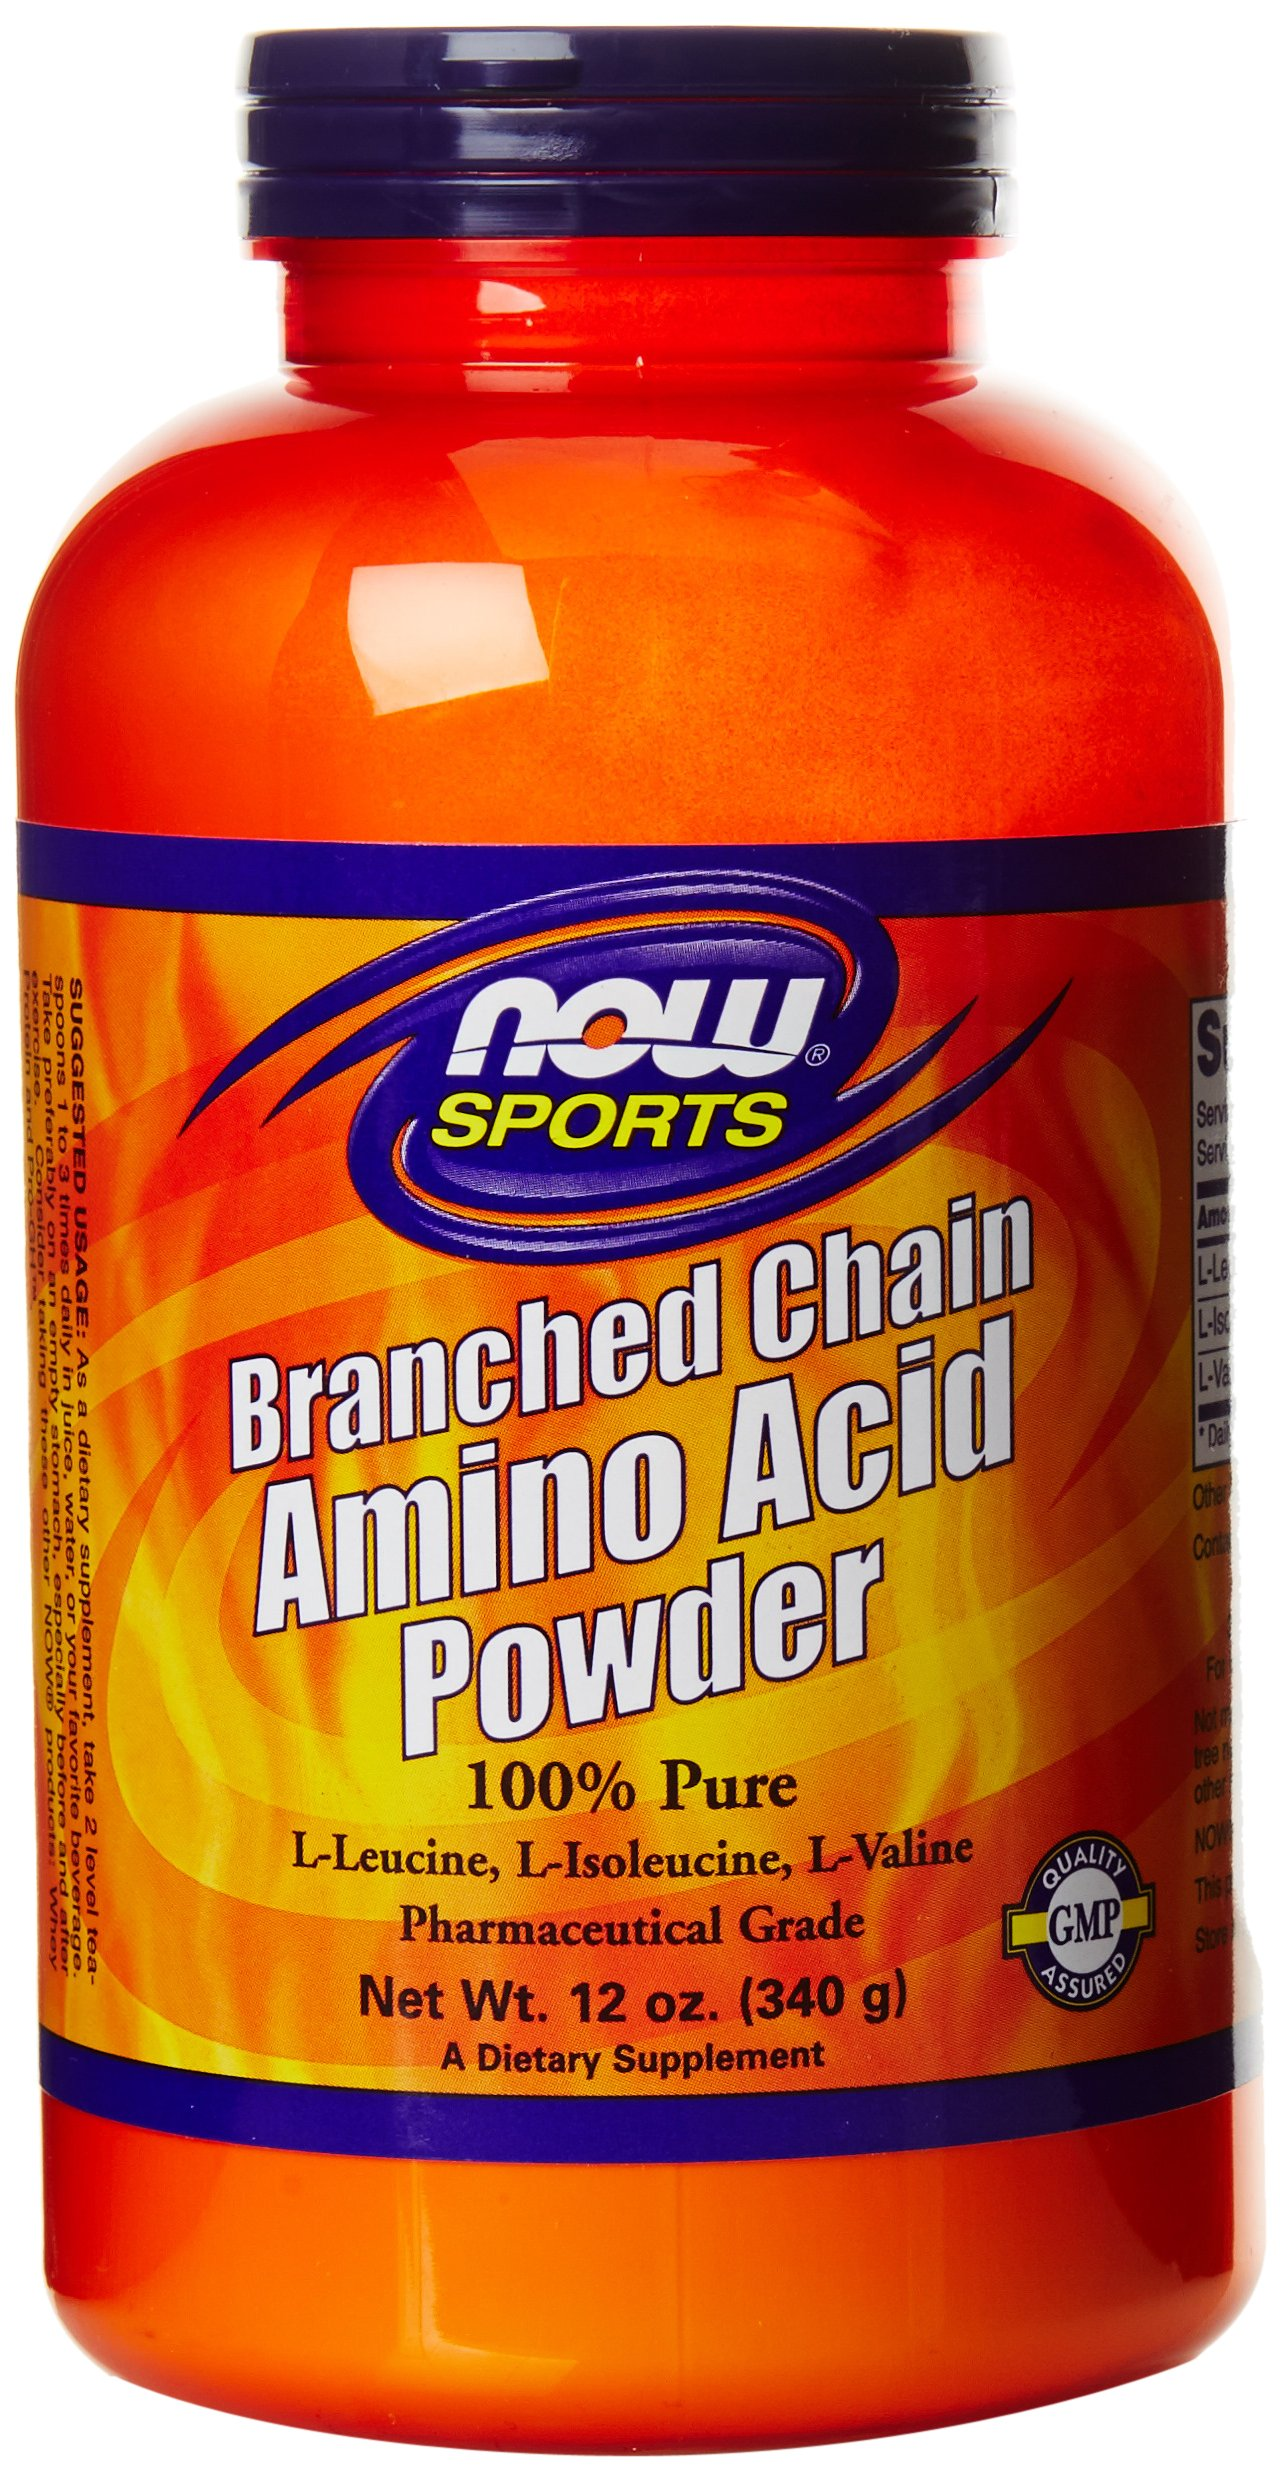 NOW Sports Branched Chain Amino Acid Powder, 12-Ounce